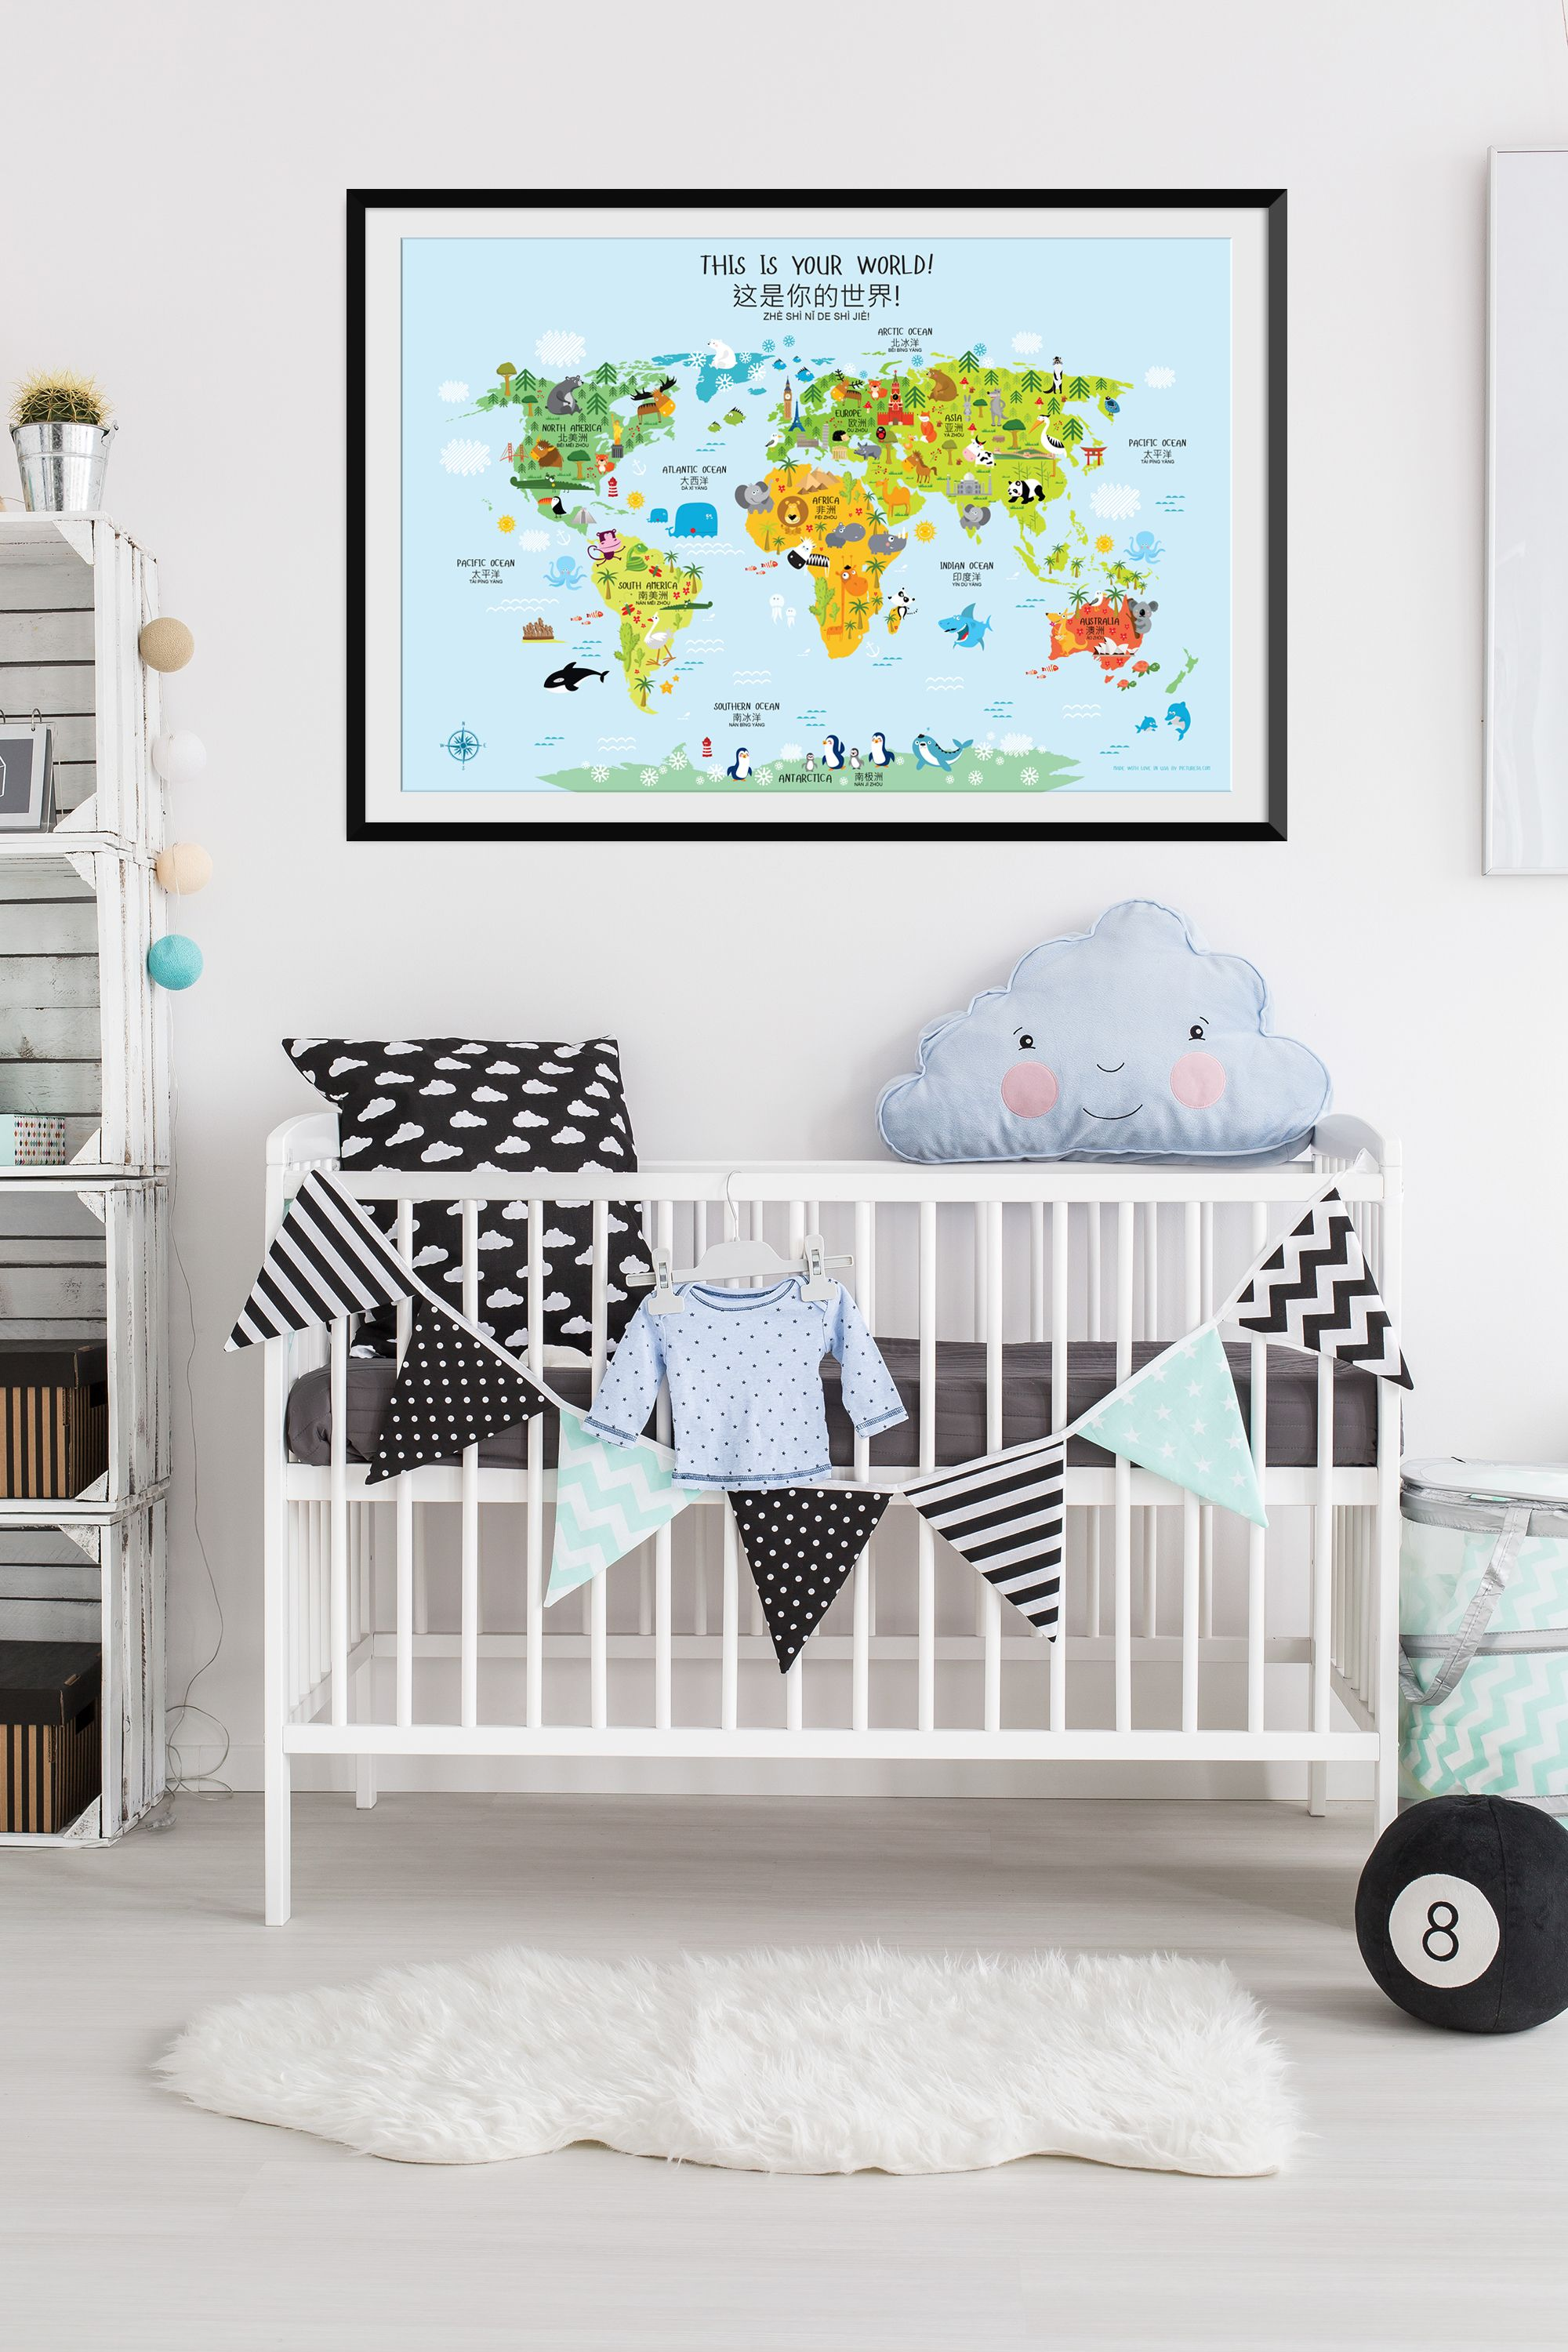 world nursery theme on world map nursery decor in english and chinese is your family bilingual and you are trying to teach disney wall decals mermaid wall decals nursery wall decals pinterest